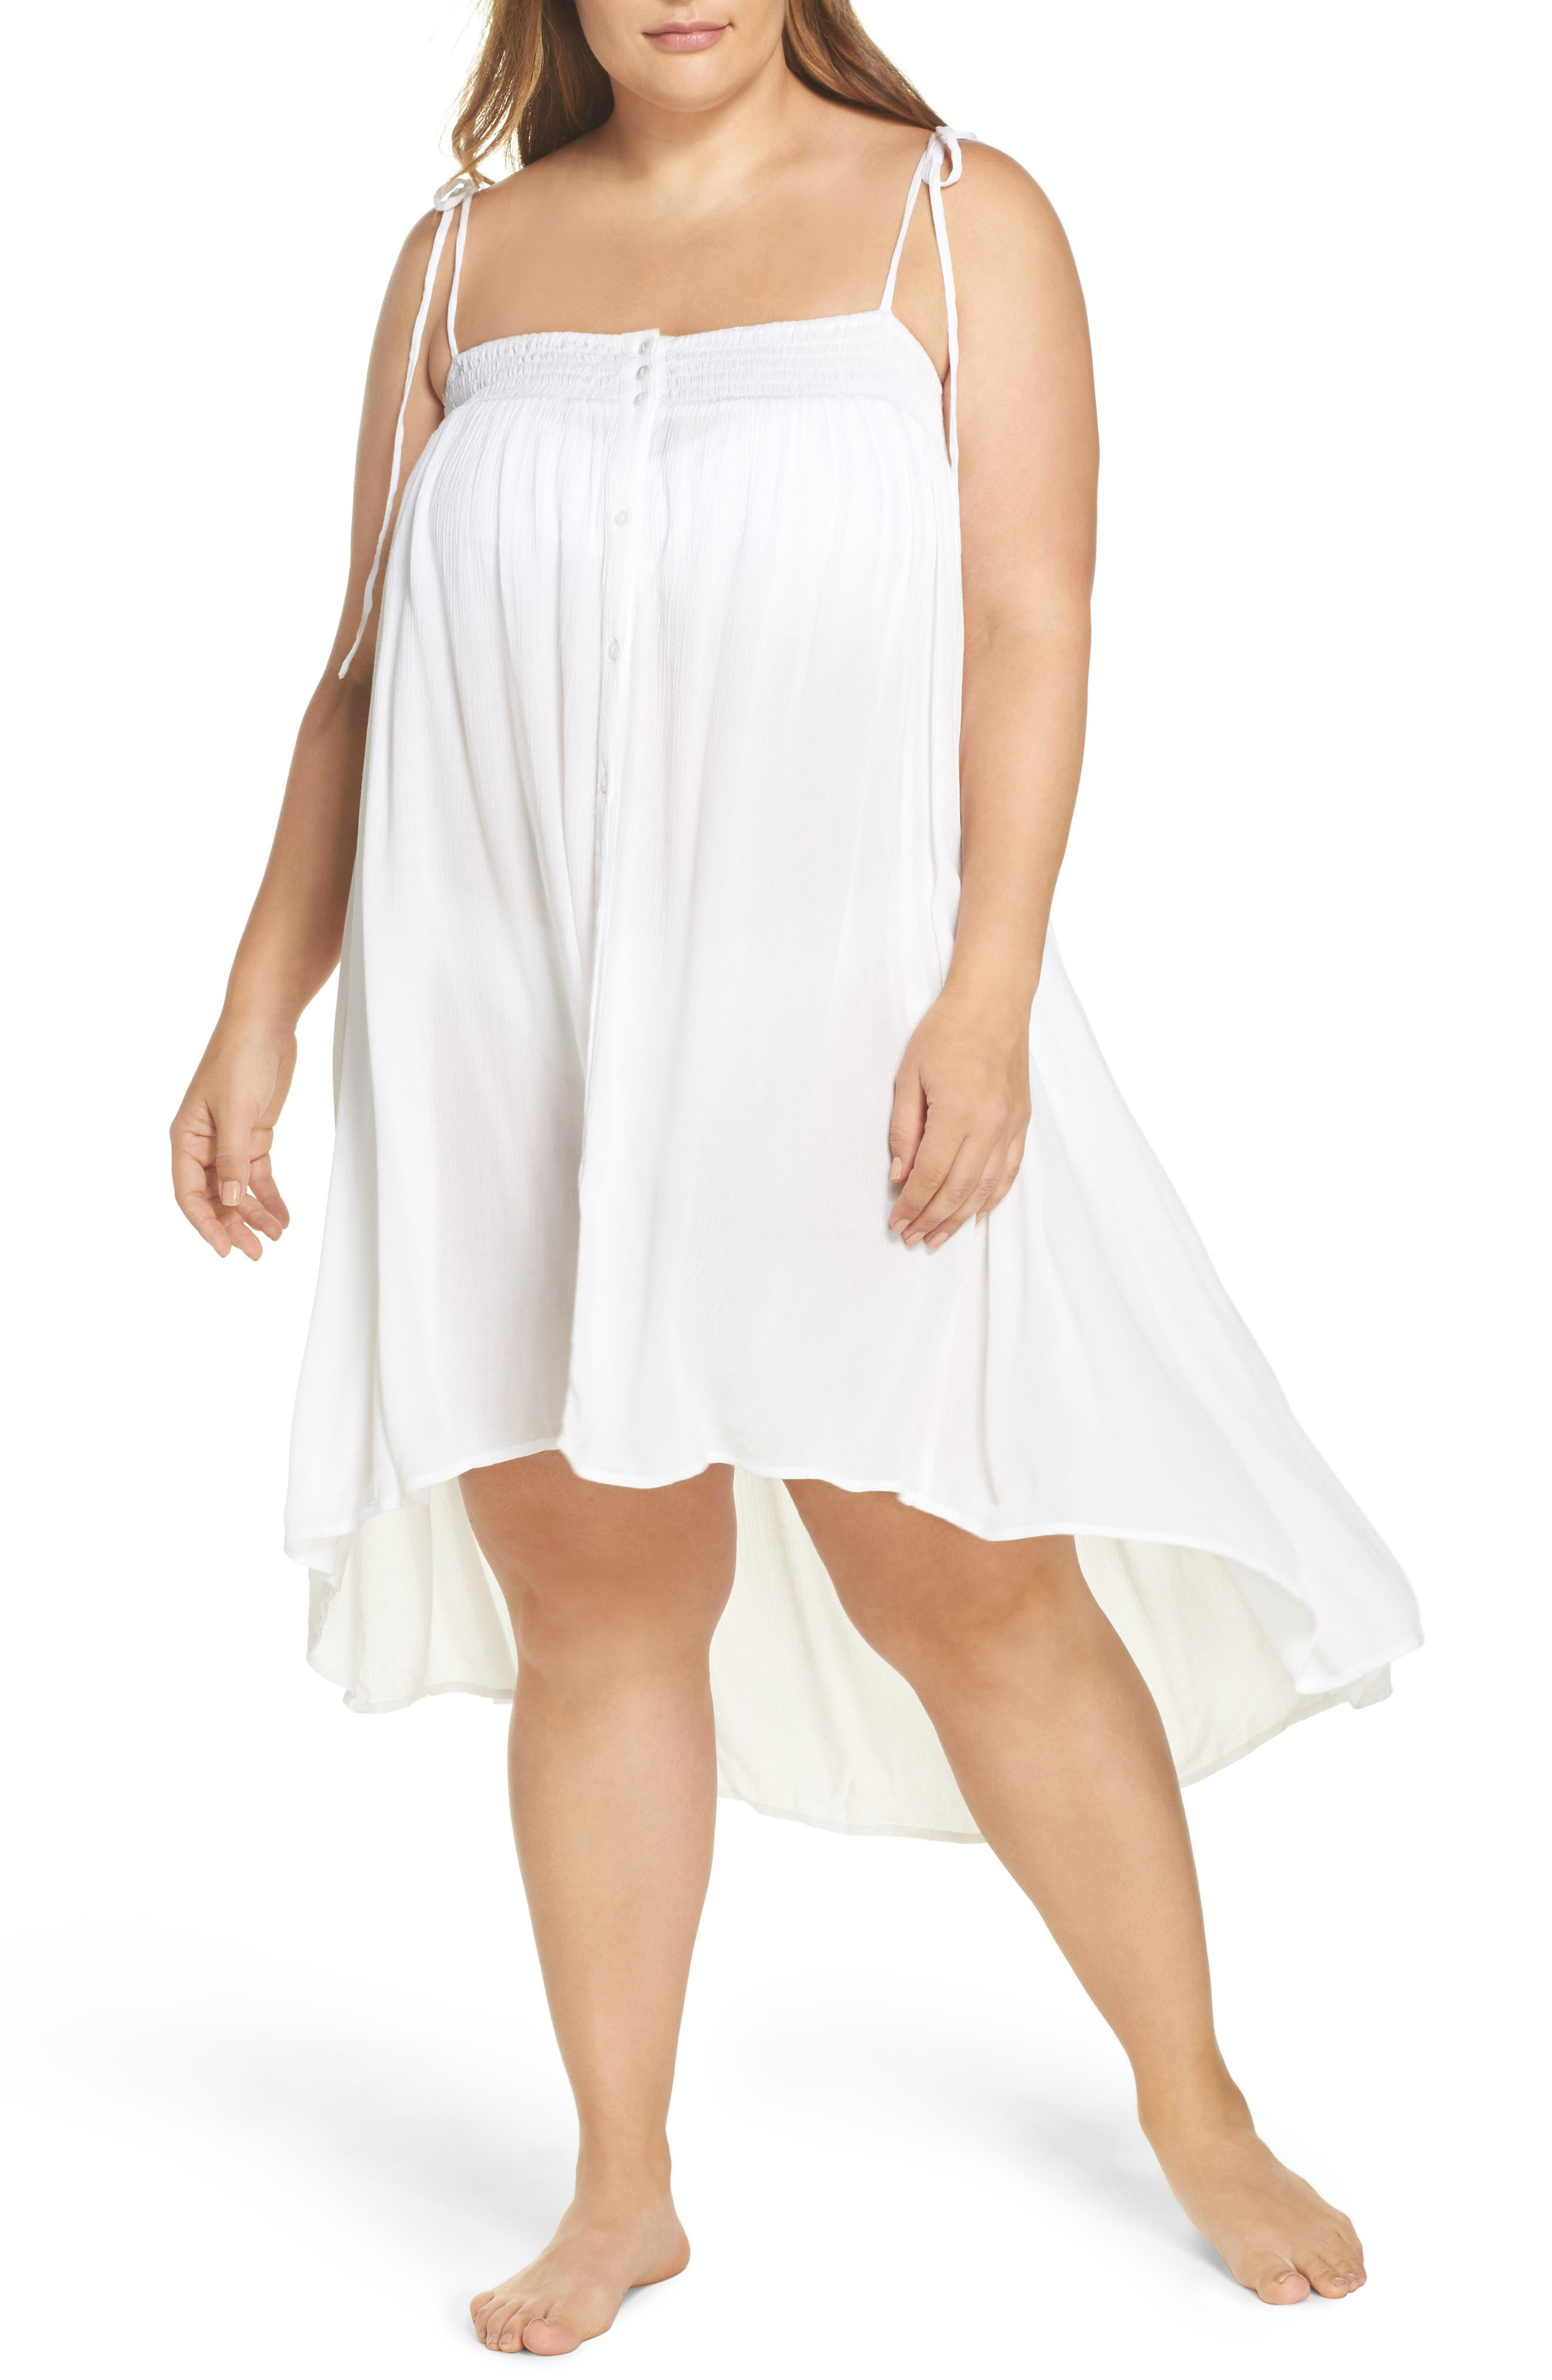 Oliva Cover-Up Dress,                         Main,                         color, White